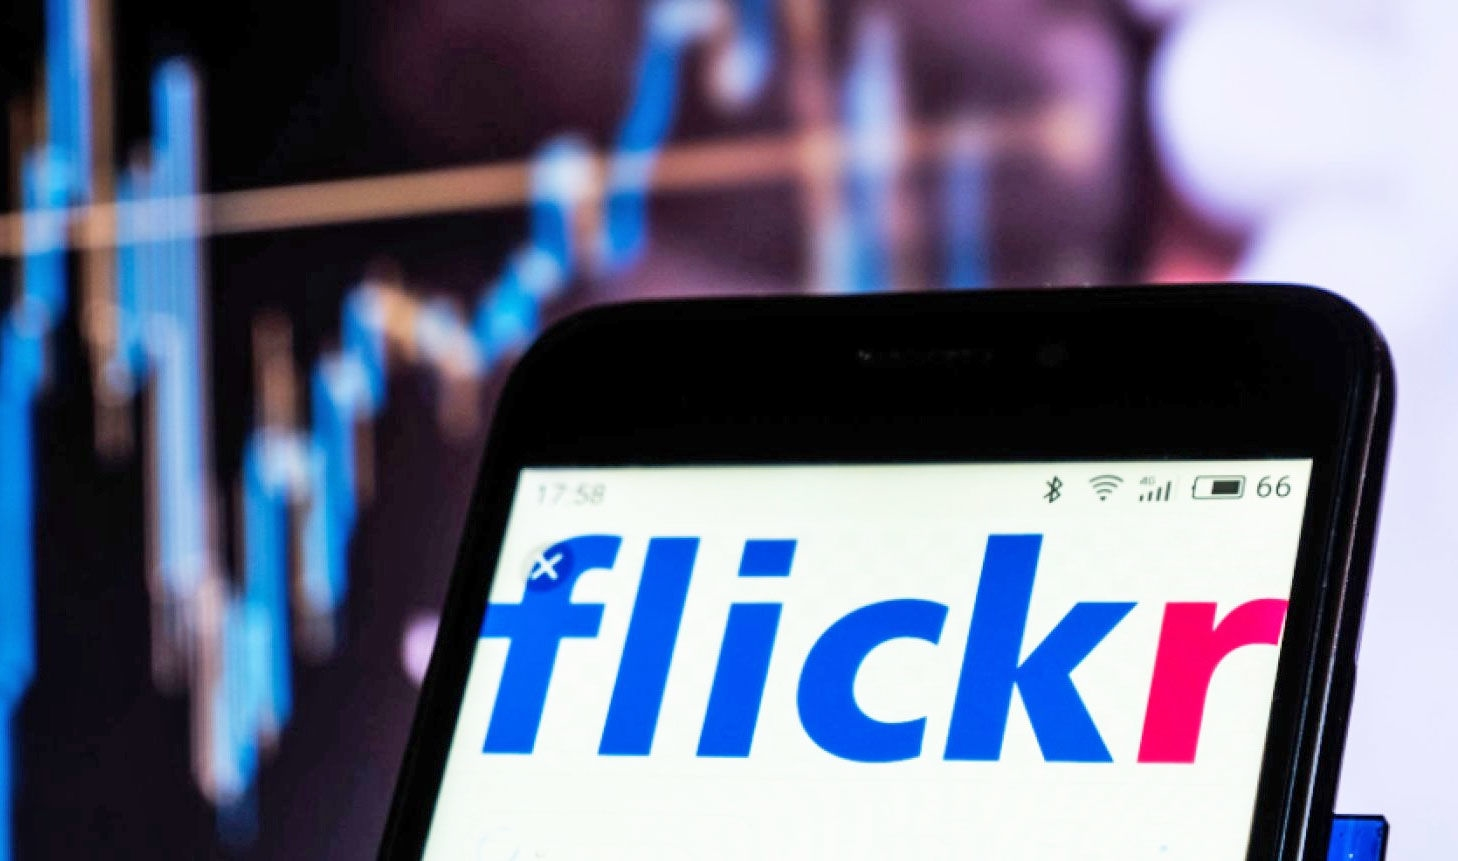 Flickr limits free plan to 1,000 photos or videos | DeviceDaily.com